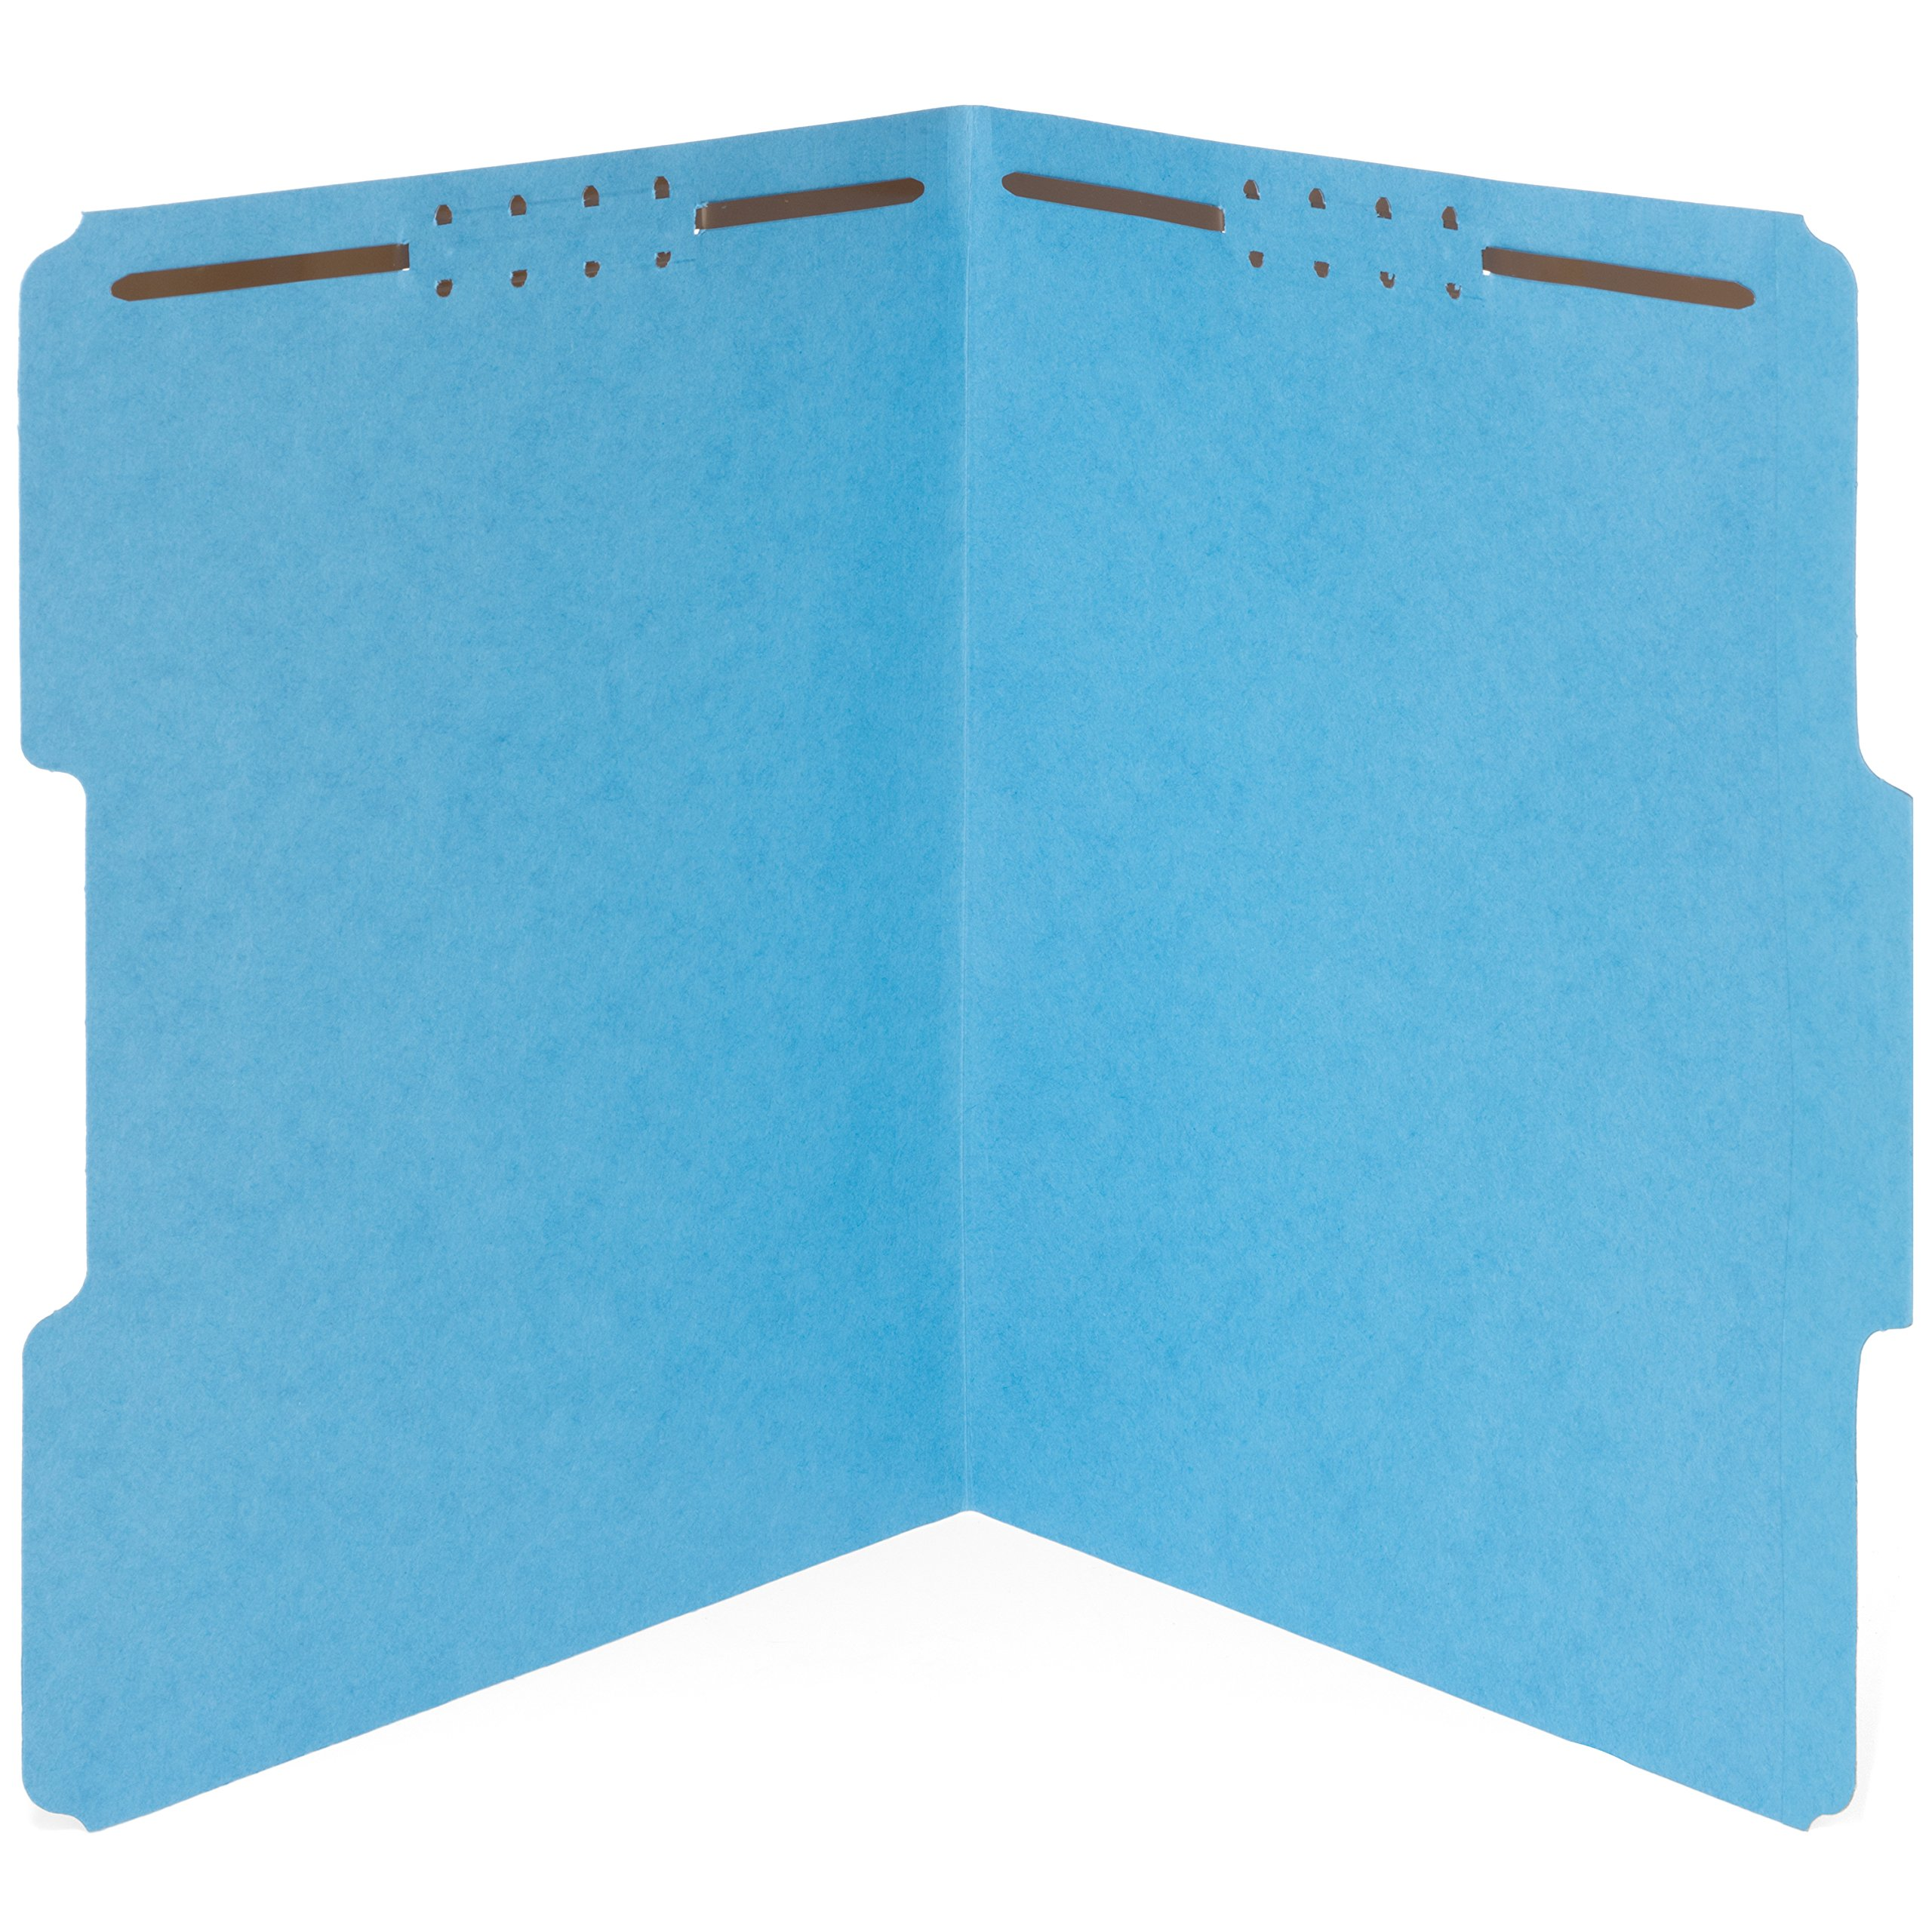 50 Fastener File Folders- 1/3 Cut Reinforced tab- Durable 2 Prongs Designed to Organize Standard Medical Files, Law Client Files, Office Reports– Letter Size, 50 Pack (Blue)